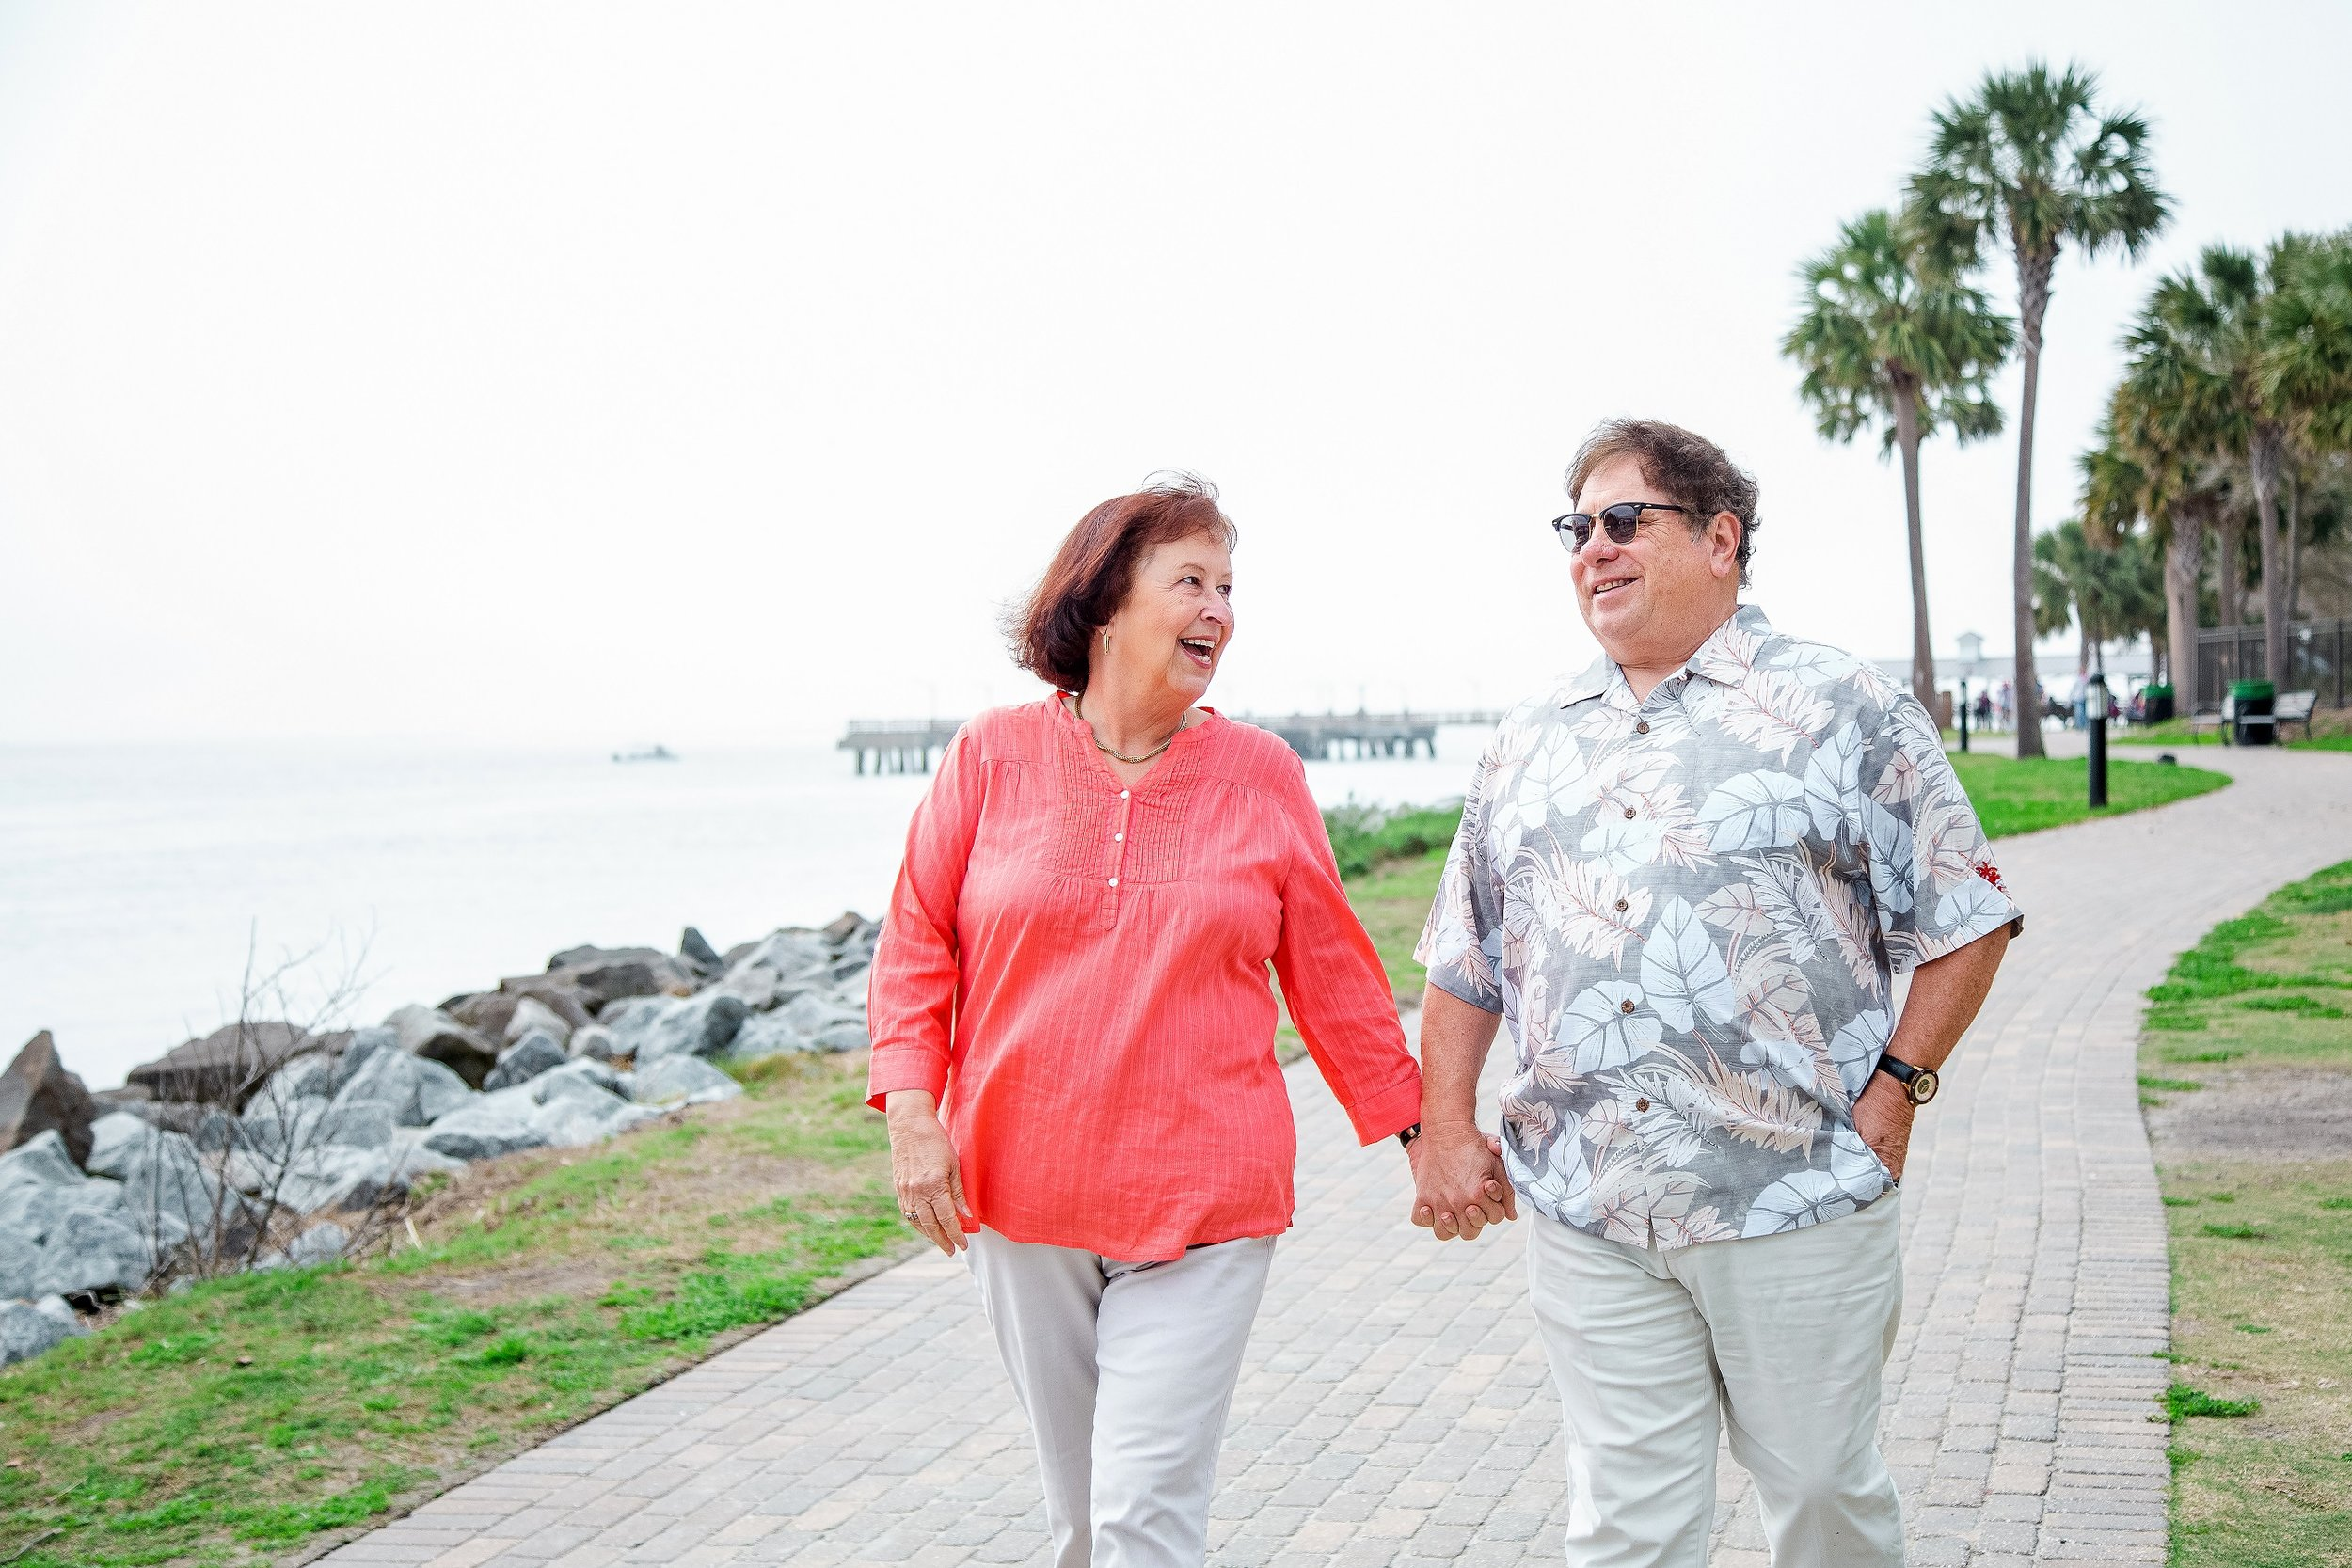 """Chucky's Cuisine & Leisure Scene - Be sure and keep up to speed with content contributor, Chuck Jones, who spends his time traveling with his lovely wife Janice and sharing the latest """"musts"""" on the Golden Isles with a hefty dose of his charming wit."""